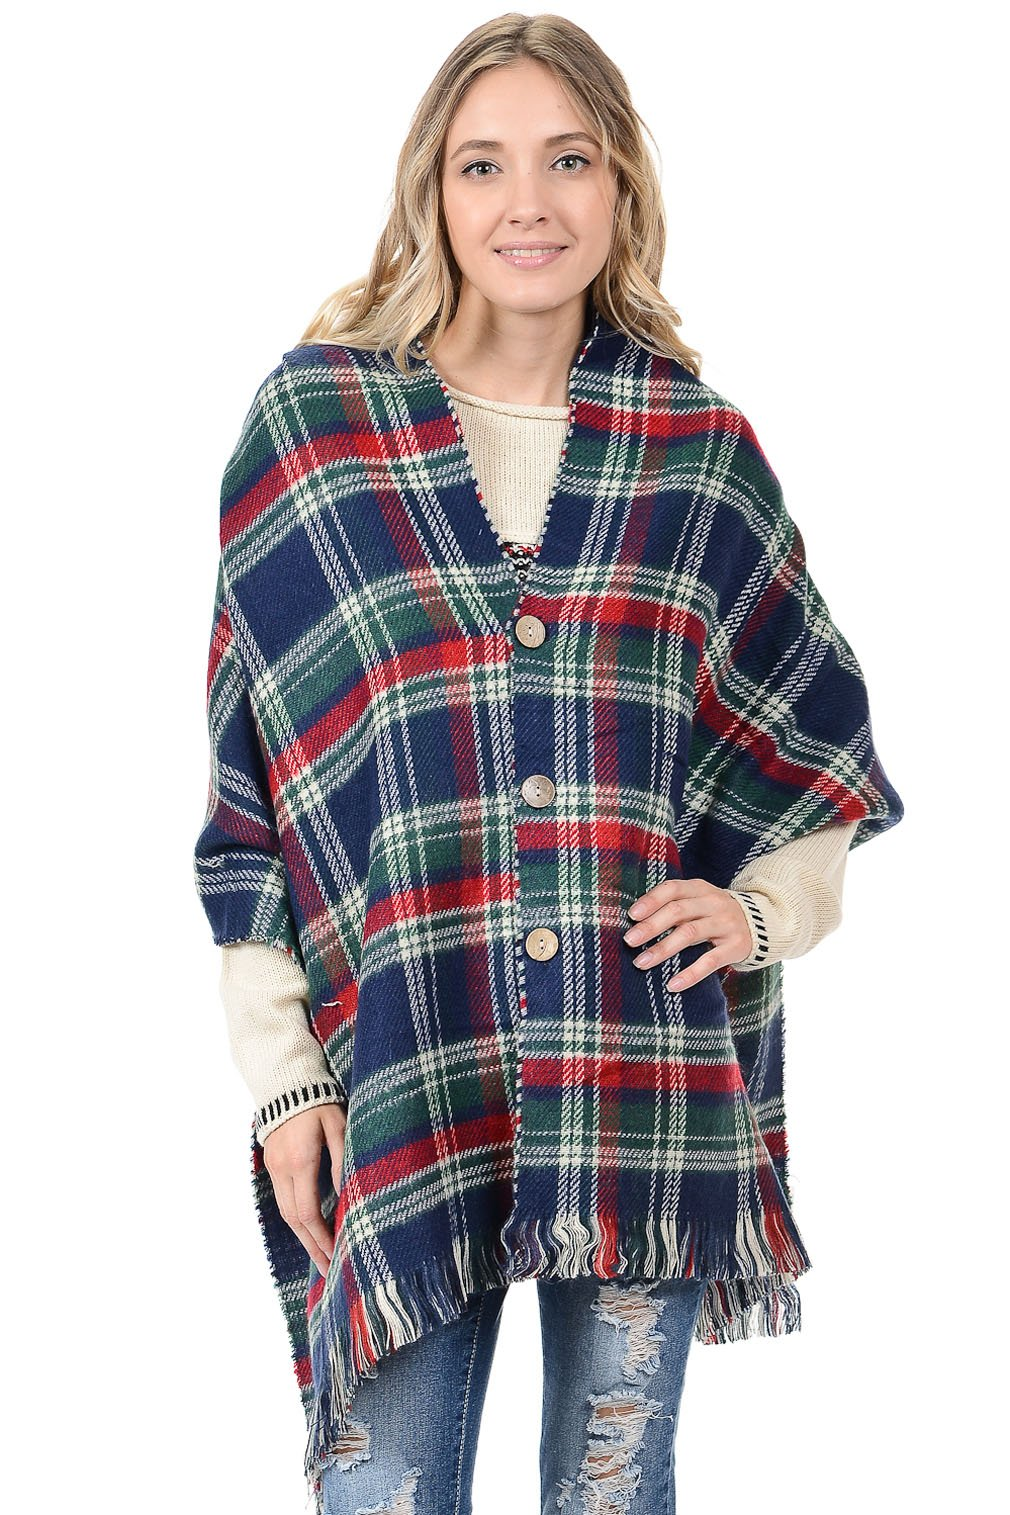 Basico Women's Knitted Sweater Poncho Cape Shawl Wrap One Size Various Colors (Style 03 New Navy)